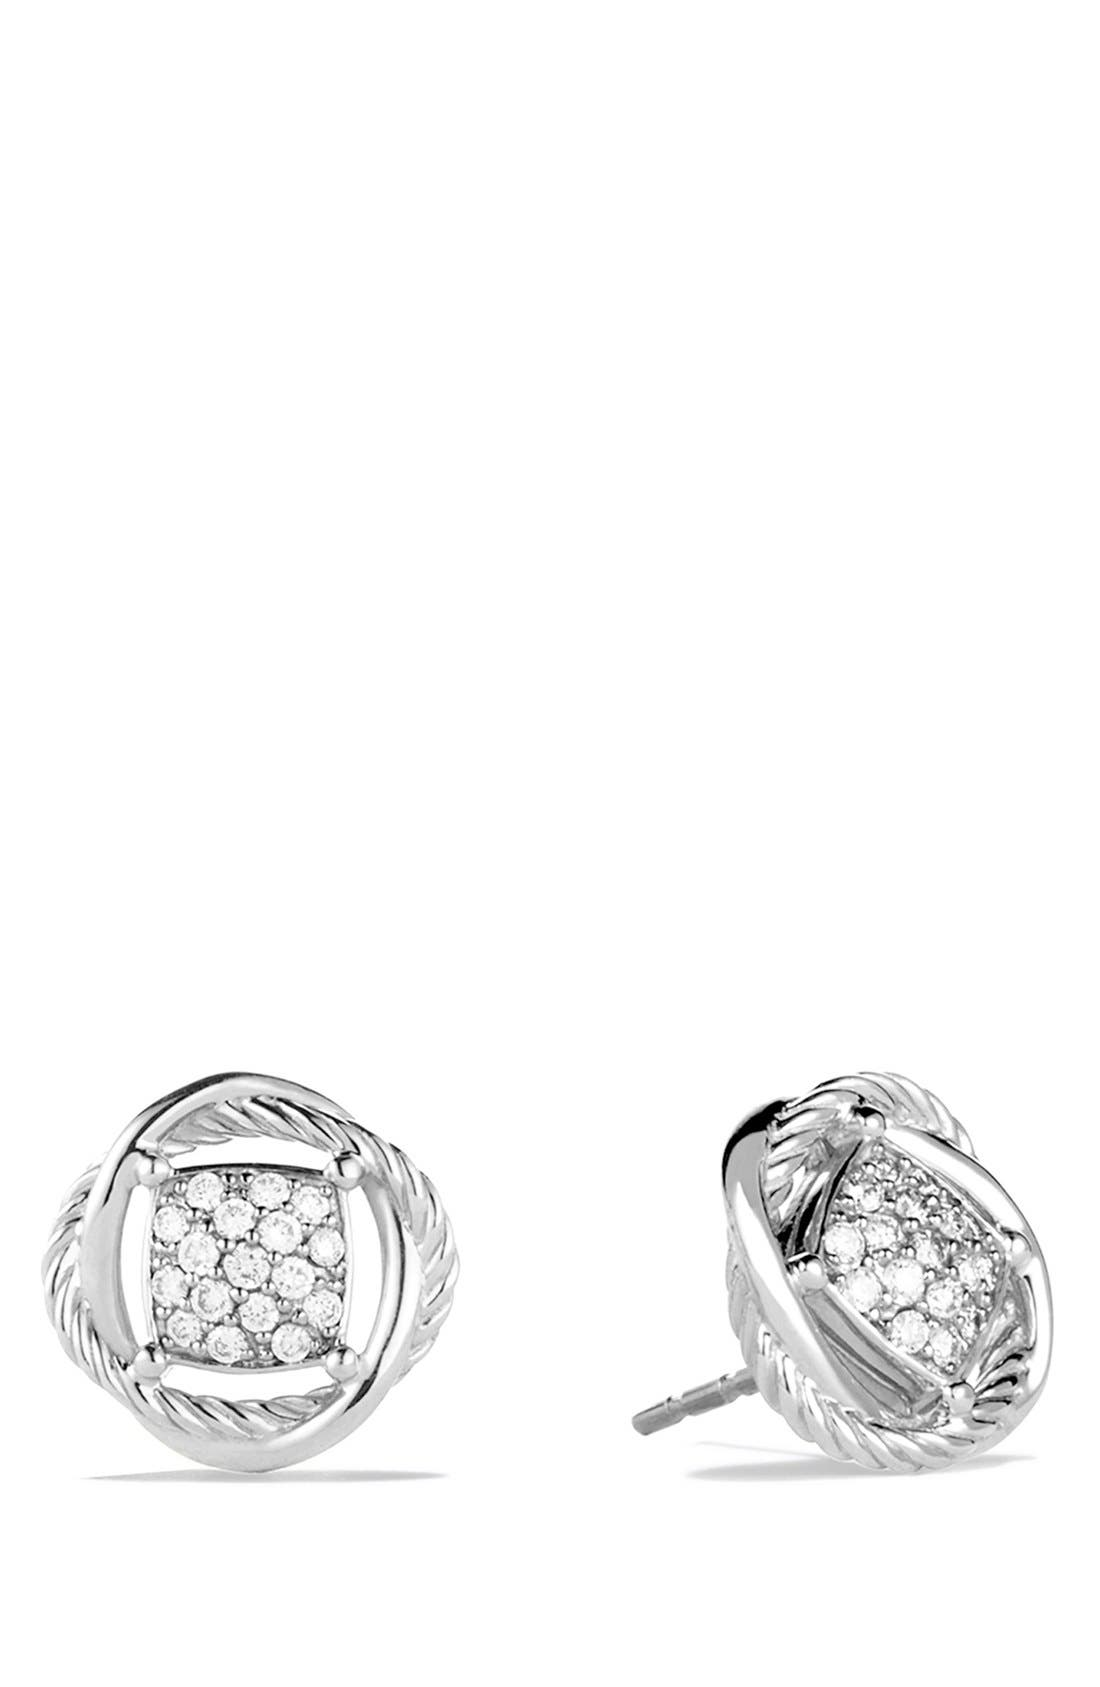 Main Image - David Yurman 'Infinity' Pavé Diamond Stud Earrings